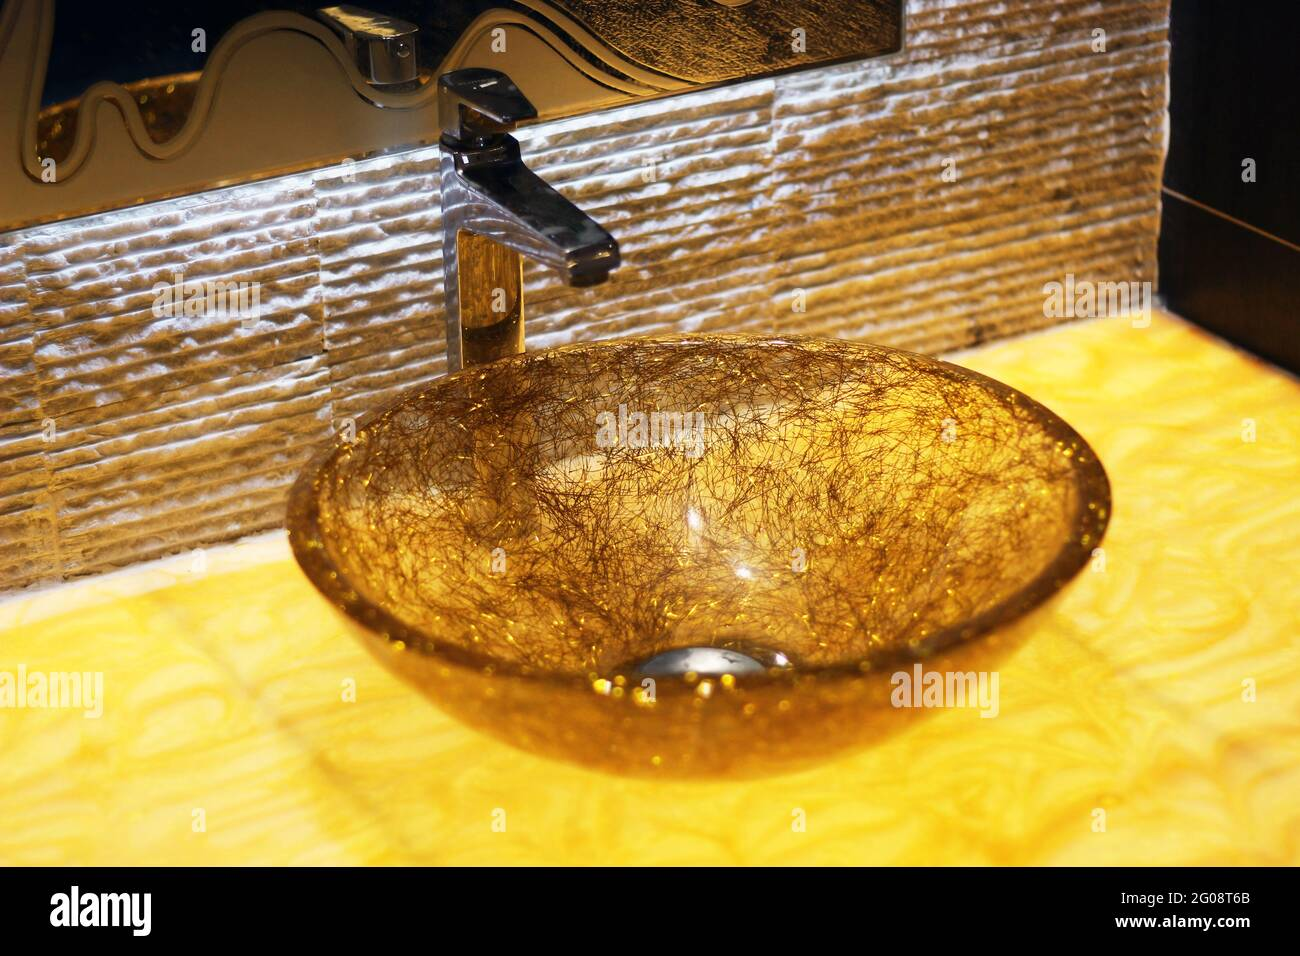 Modern Hygienic Wash Basin Unique Sparkle Transparent Glass Resin Onyx Marble Glowing Lit Light Table Bathroom Stone Wall Backlit Mirror Tap Faucet Lu Stock Photo Alamy